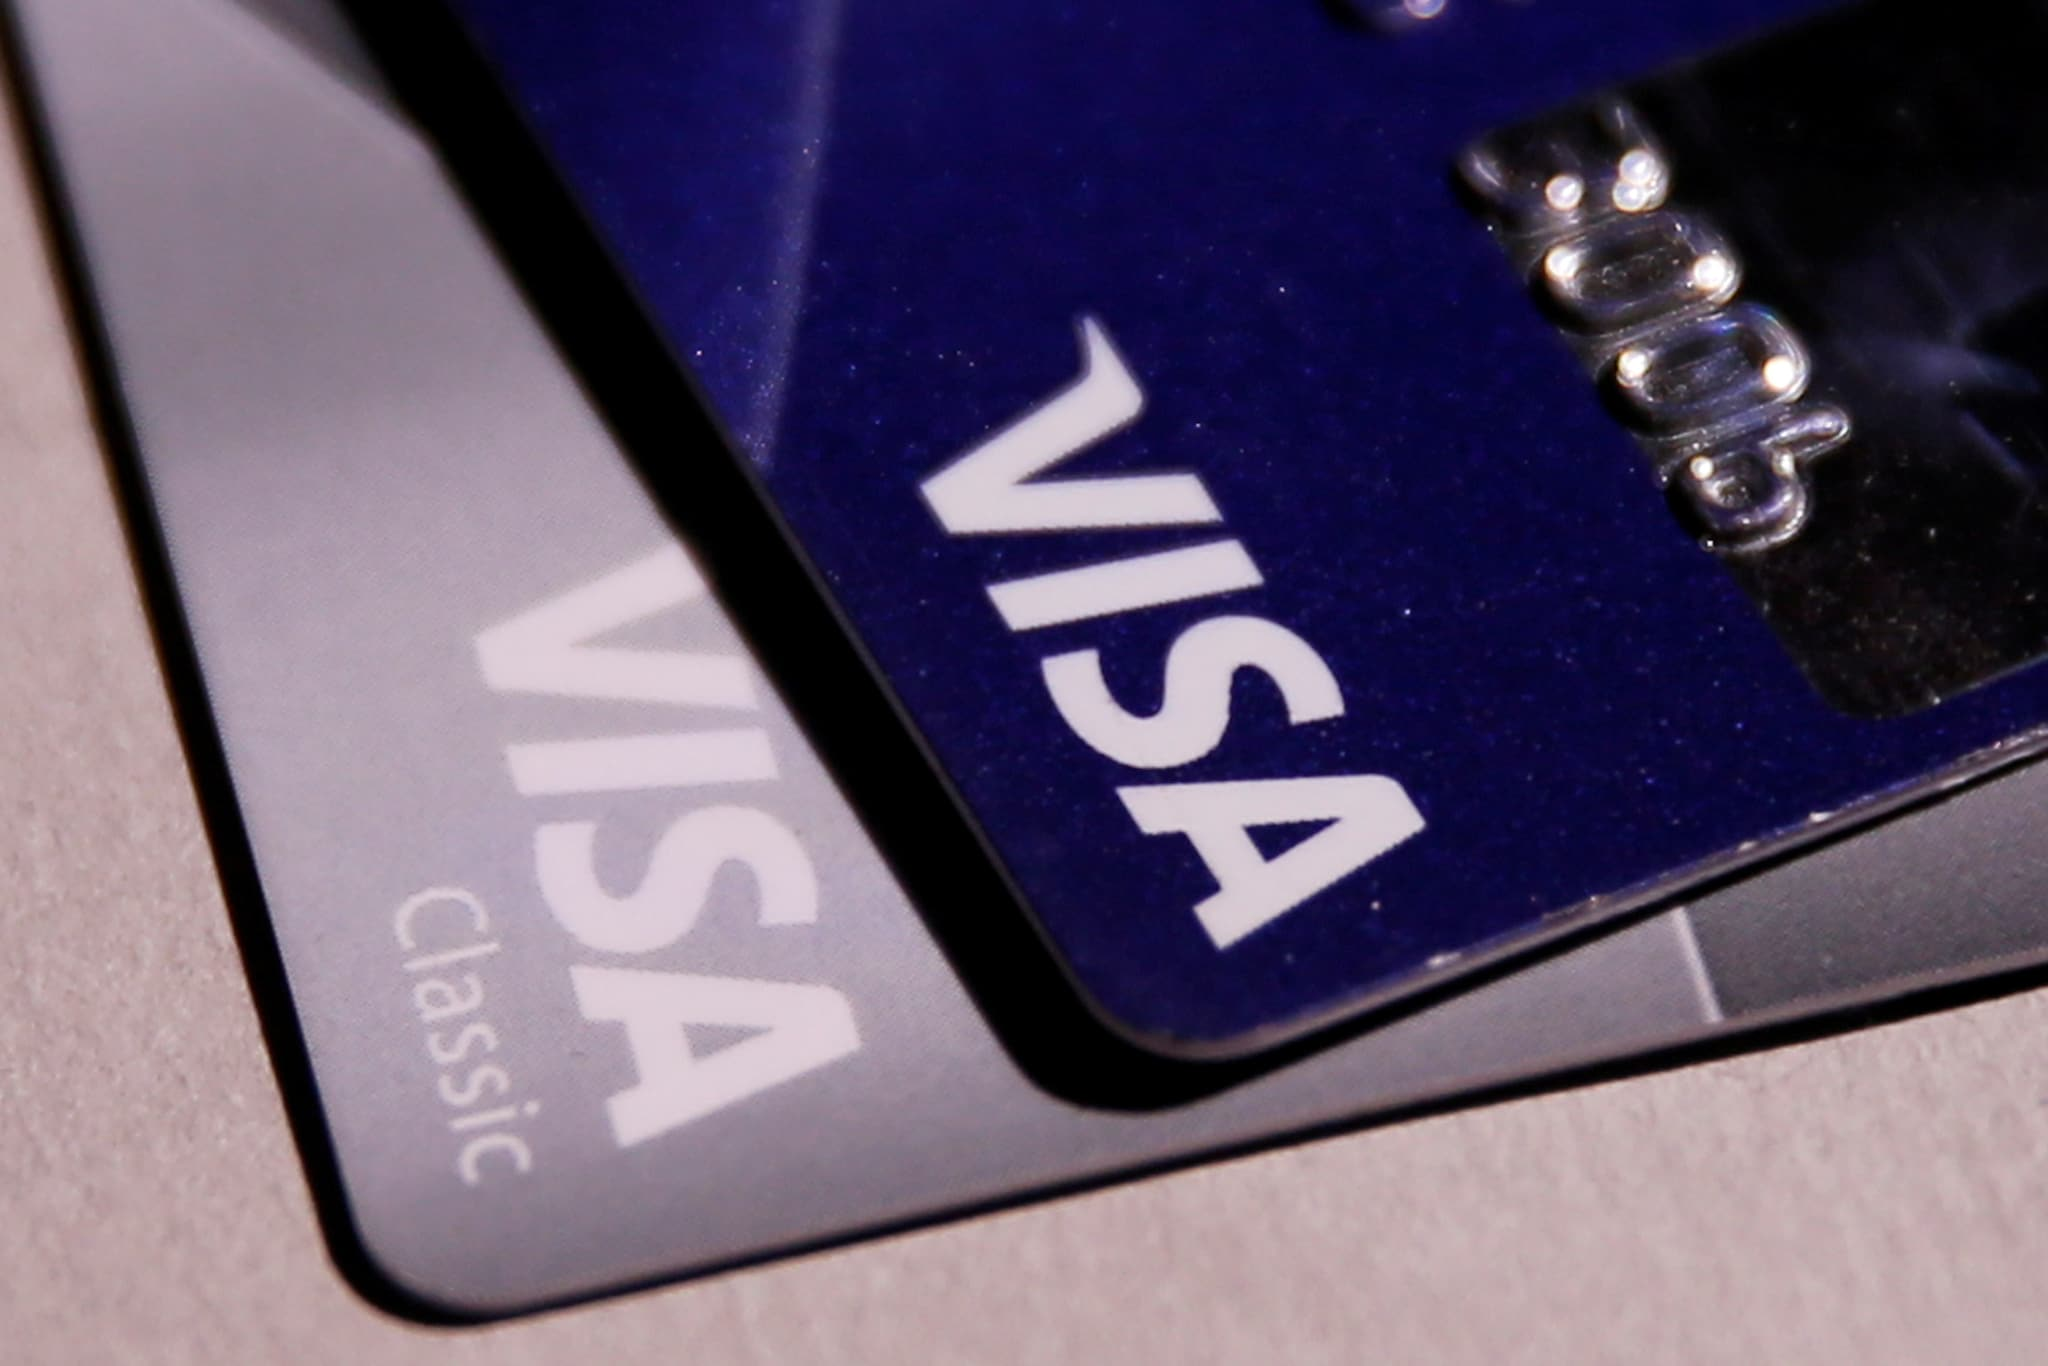 #5. Visa: The card payment company is at No.5 with a brand value of $177,918 million. (Image: Reuters)